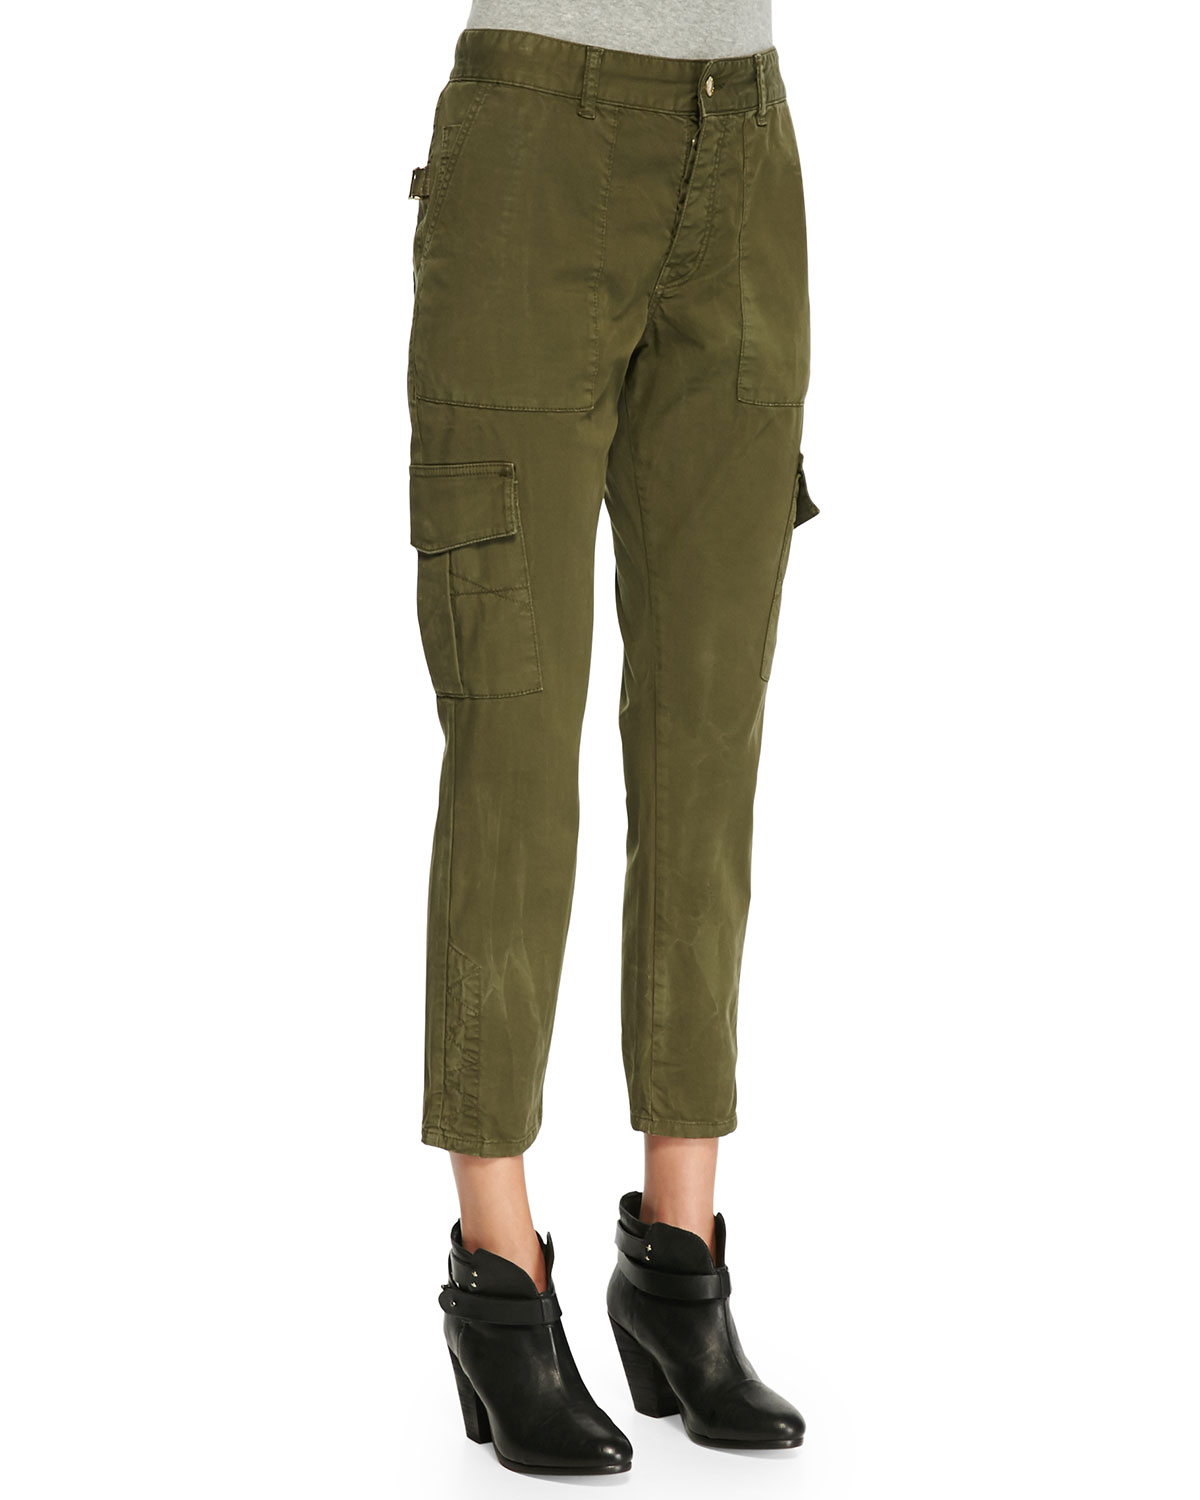 Luxury Per Se Olive Cropped Cargo Pants  Women  Zulily